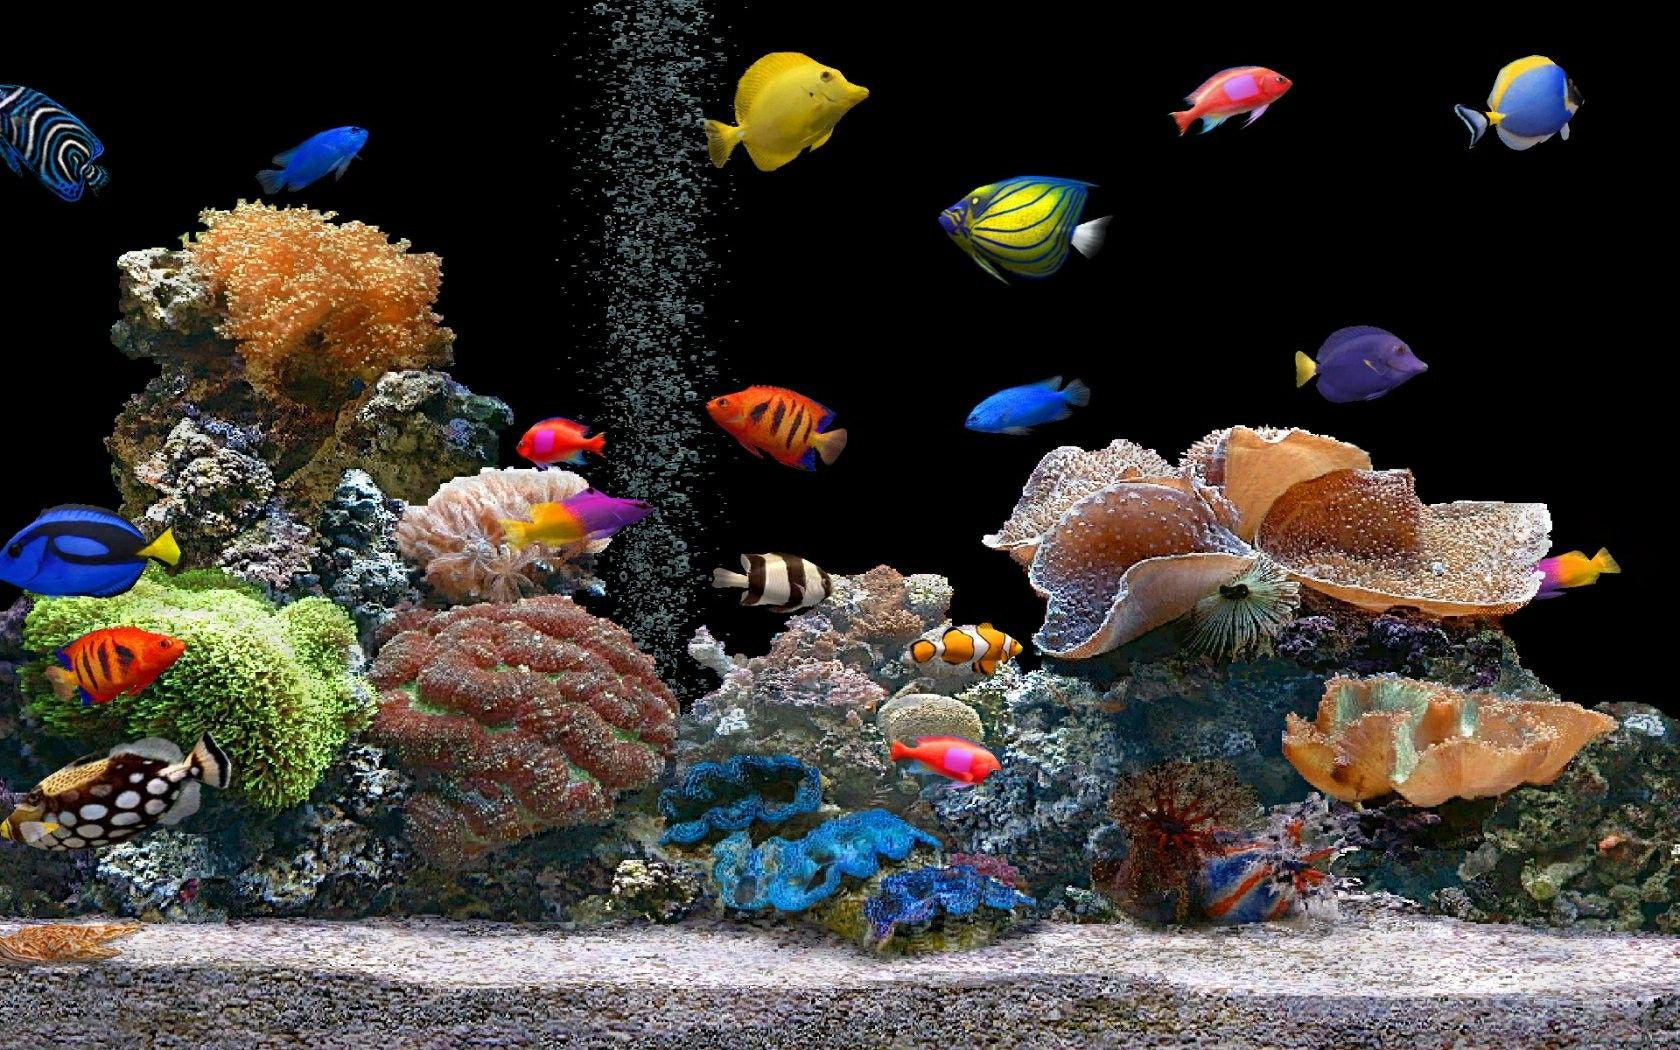 3d Desktop Aquarium Screensaver Mac Free Download